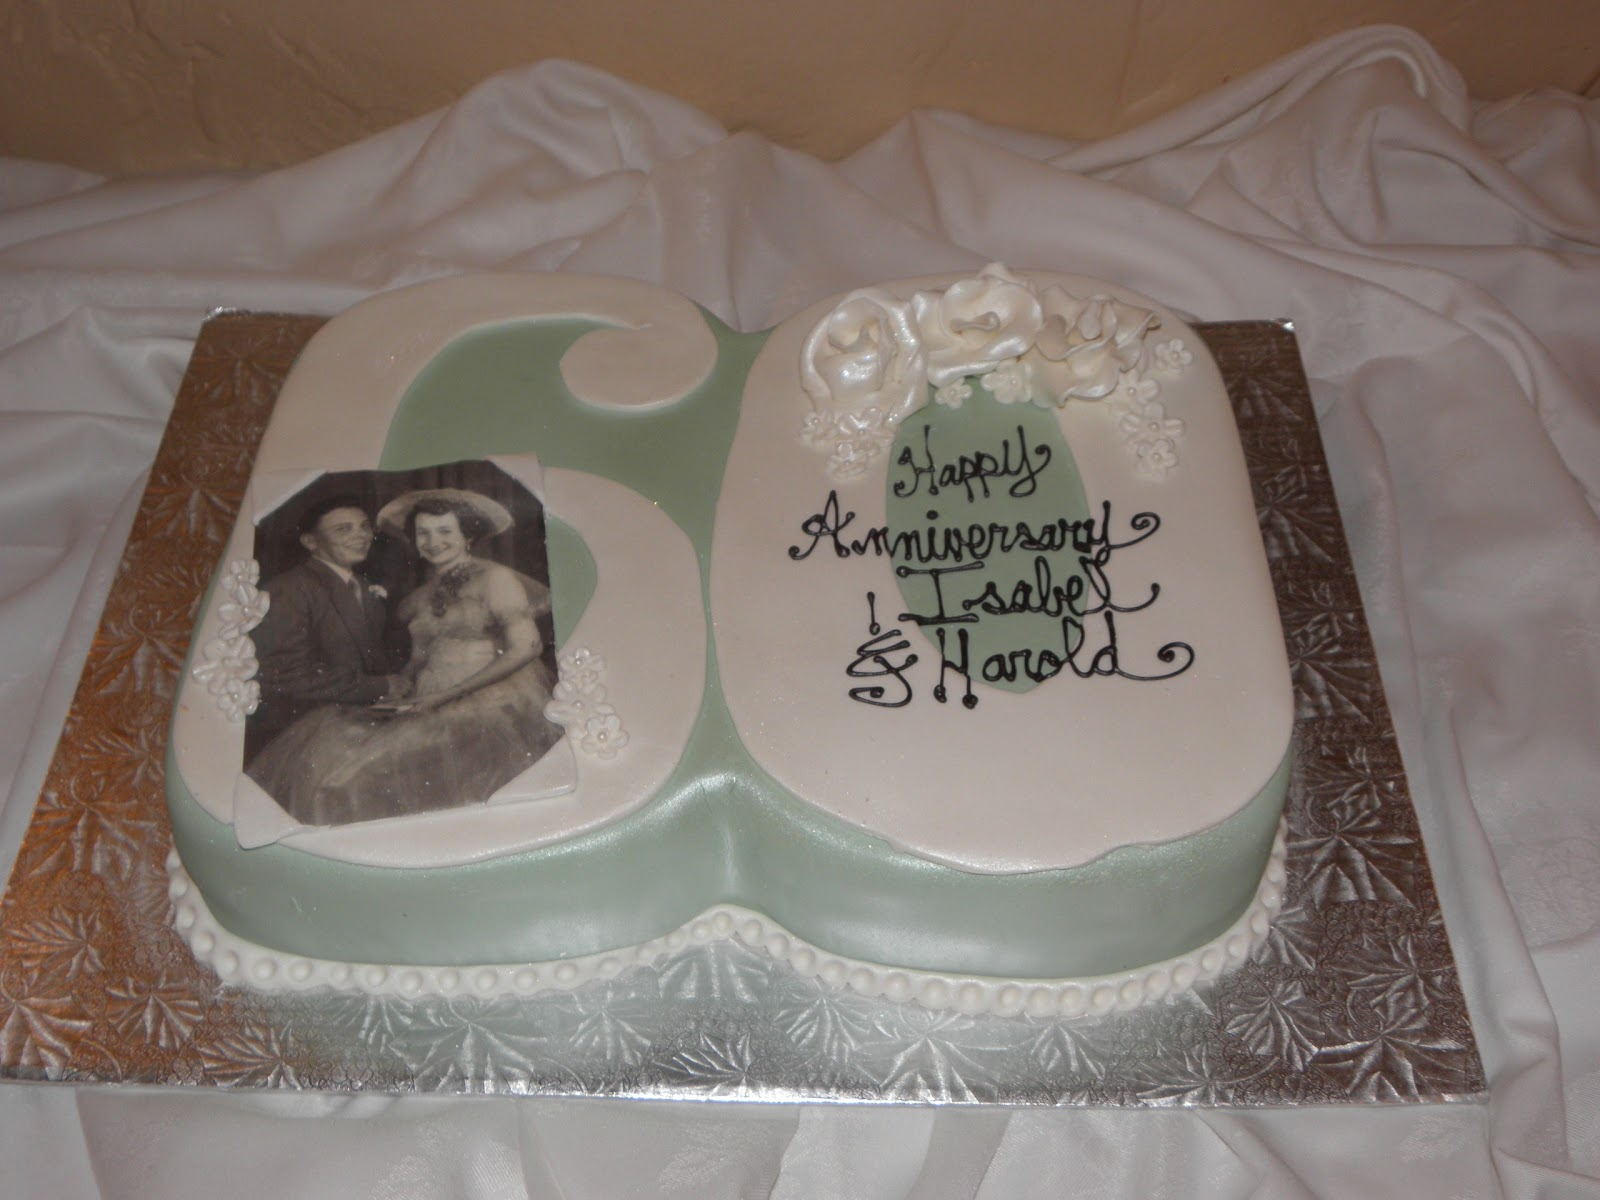 Expensive wedding cakes for the ceremony: Ideas for 60th wedding ...